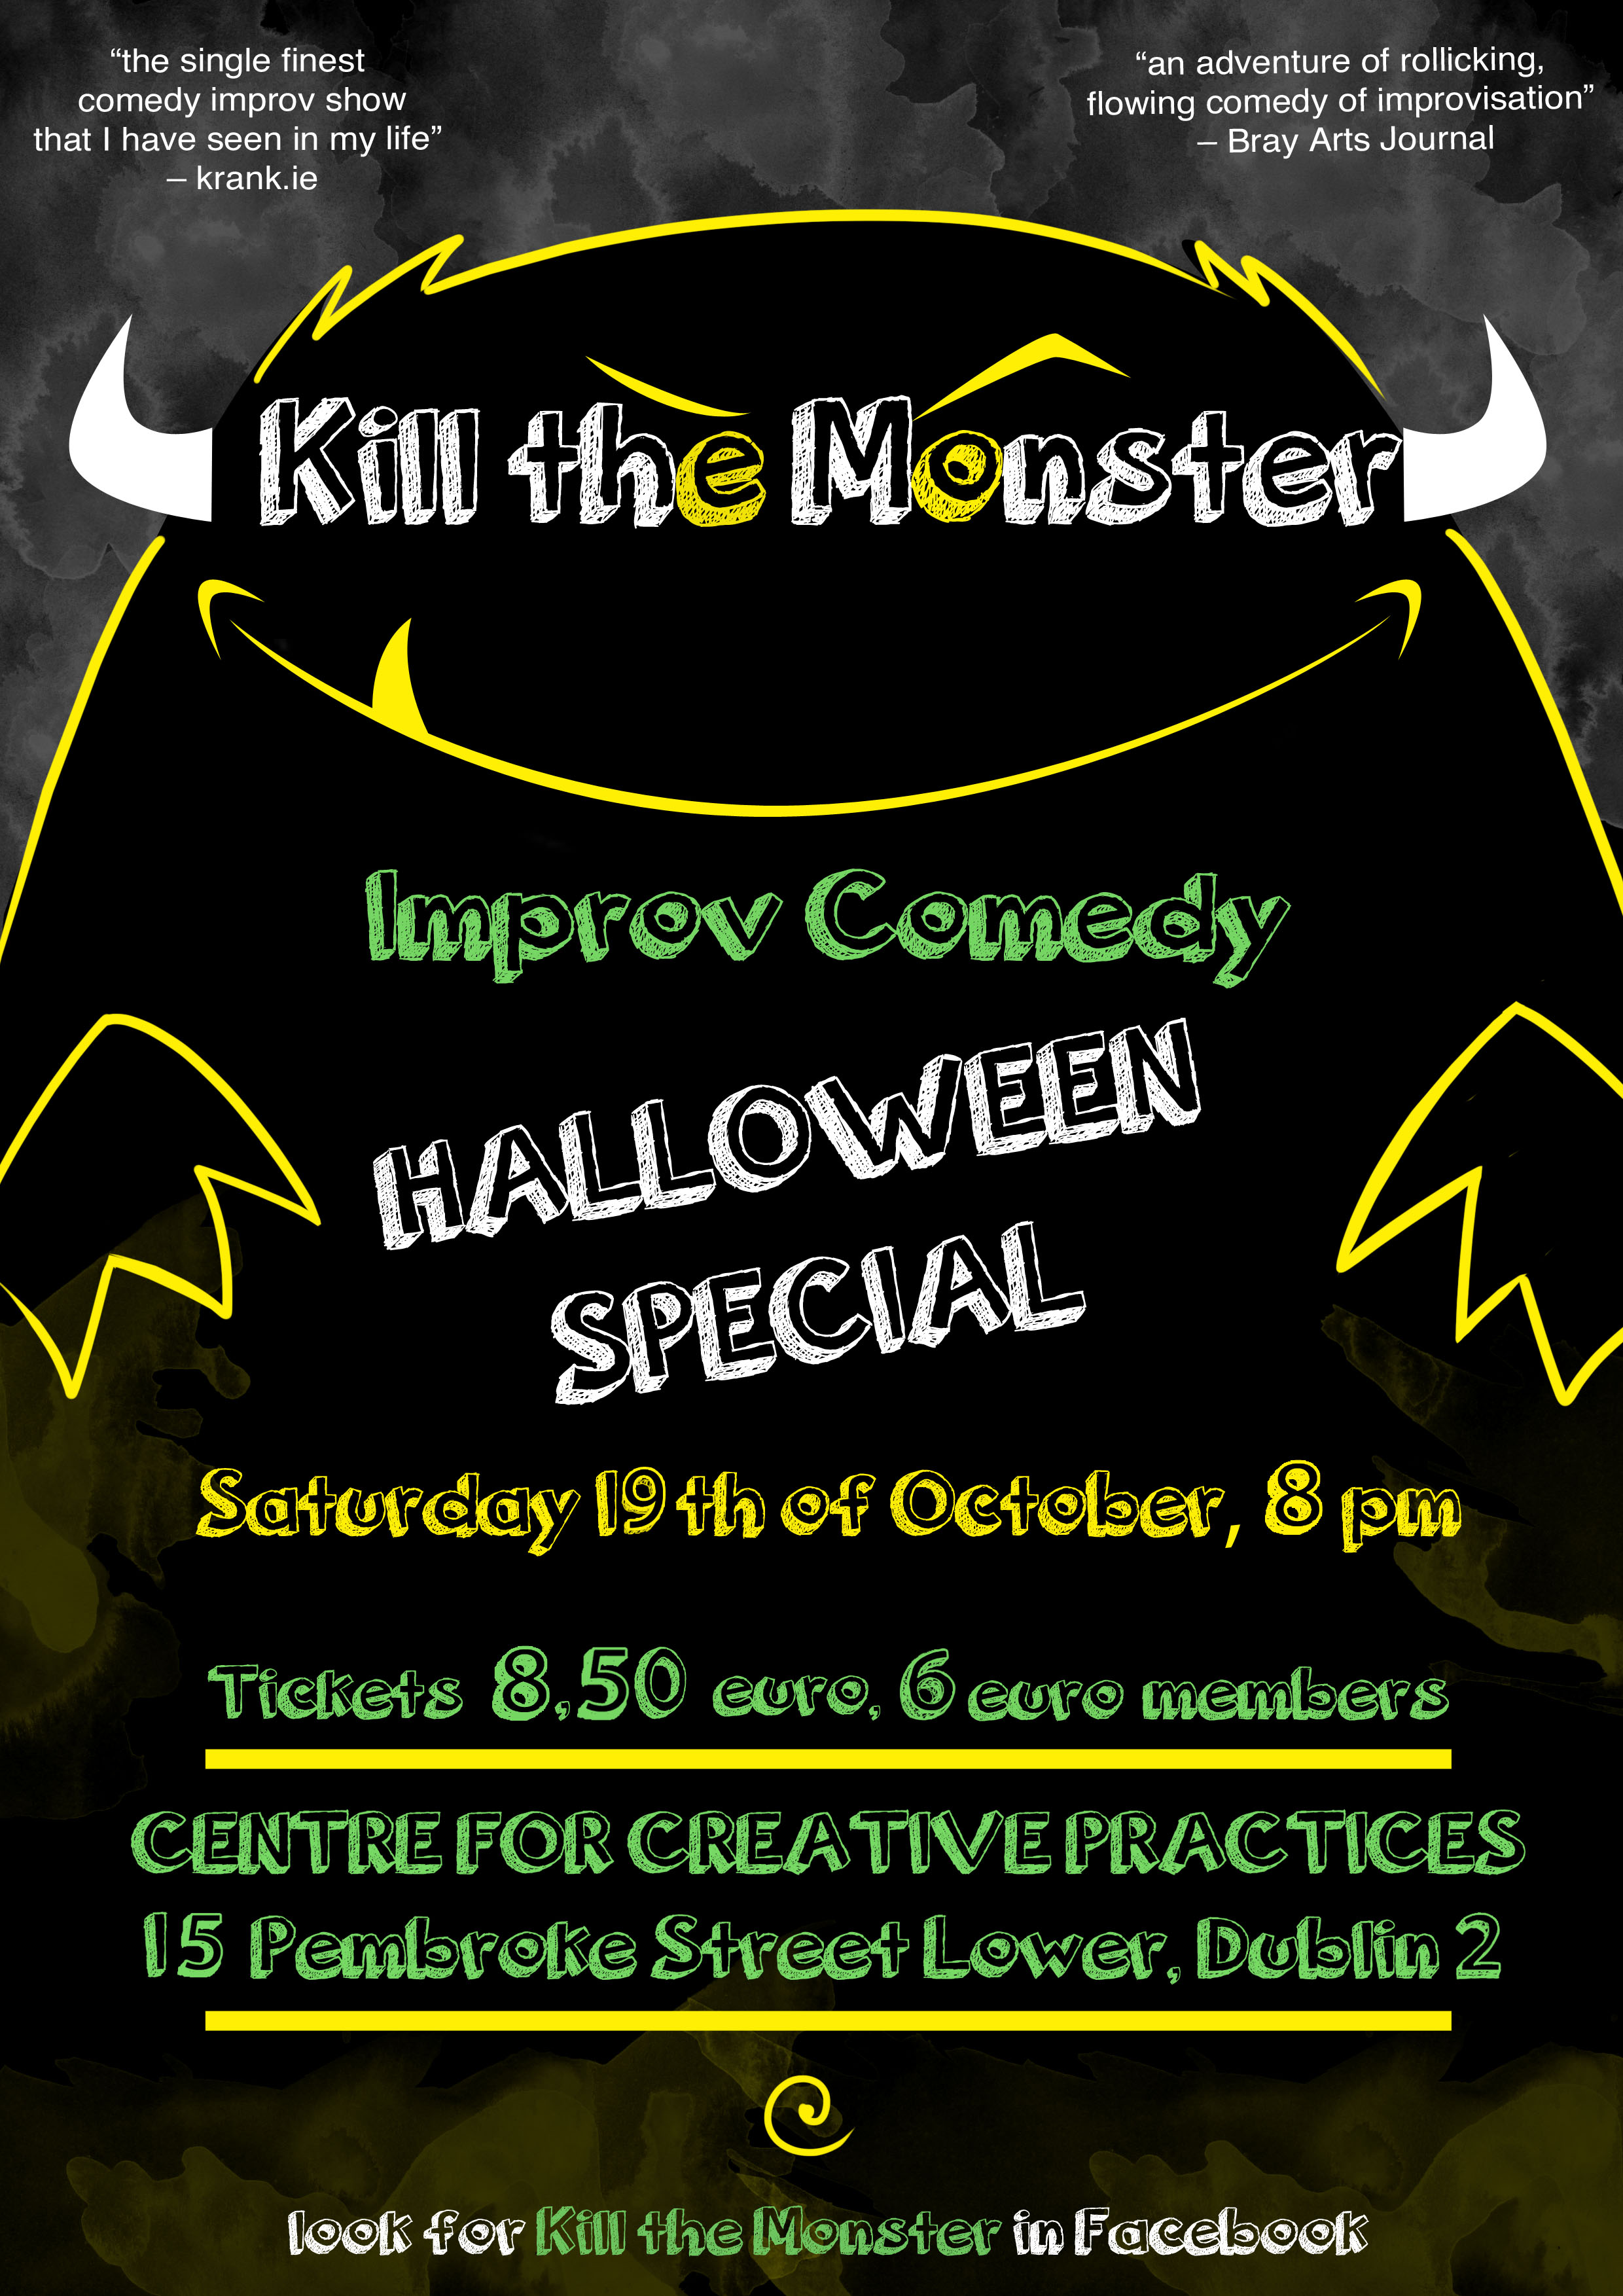 Kill The Monster Halloween